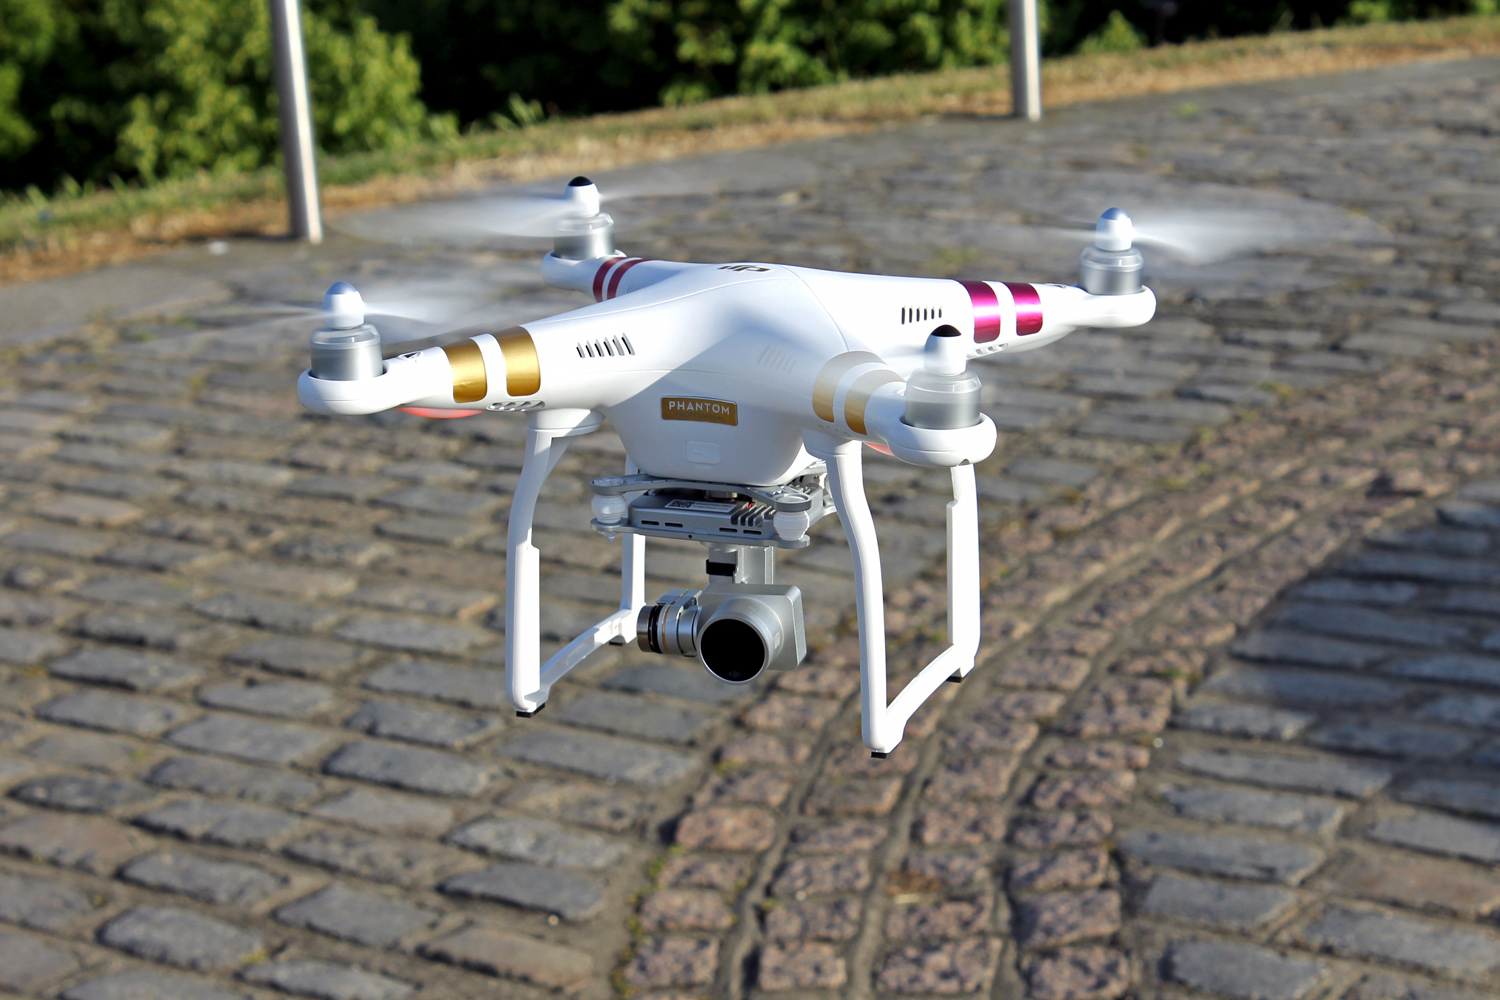 DJI Phantom 3 Professional consumer drone review